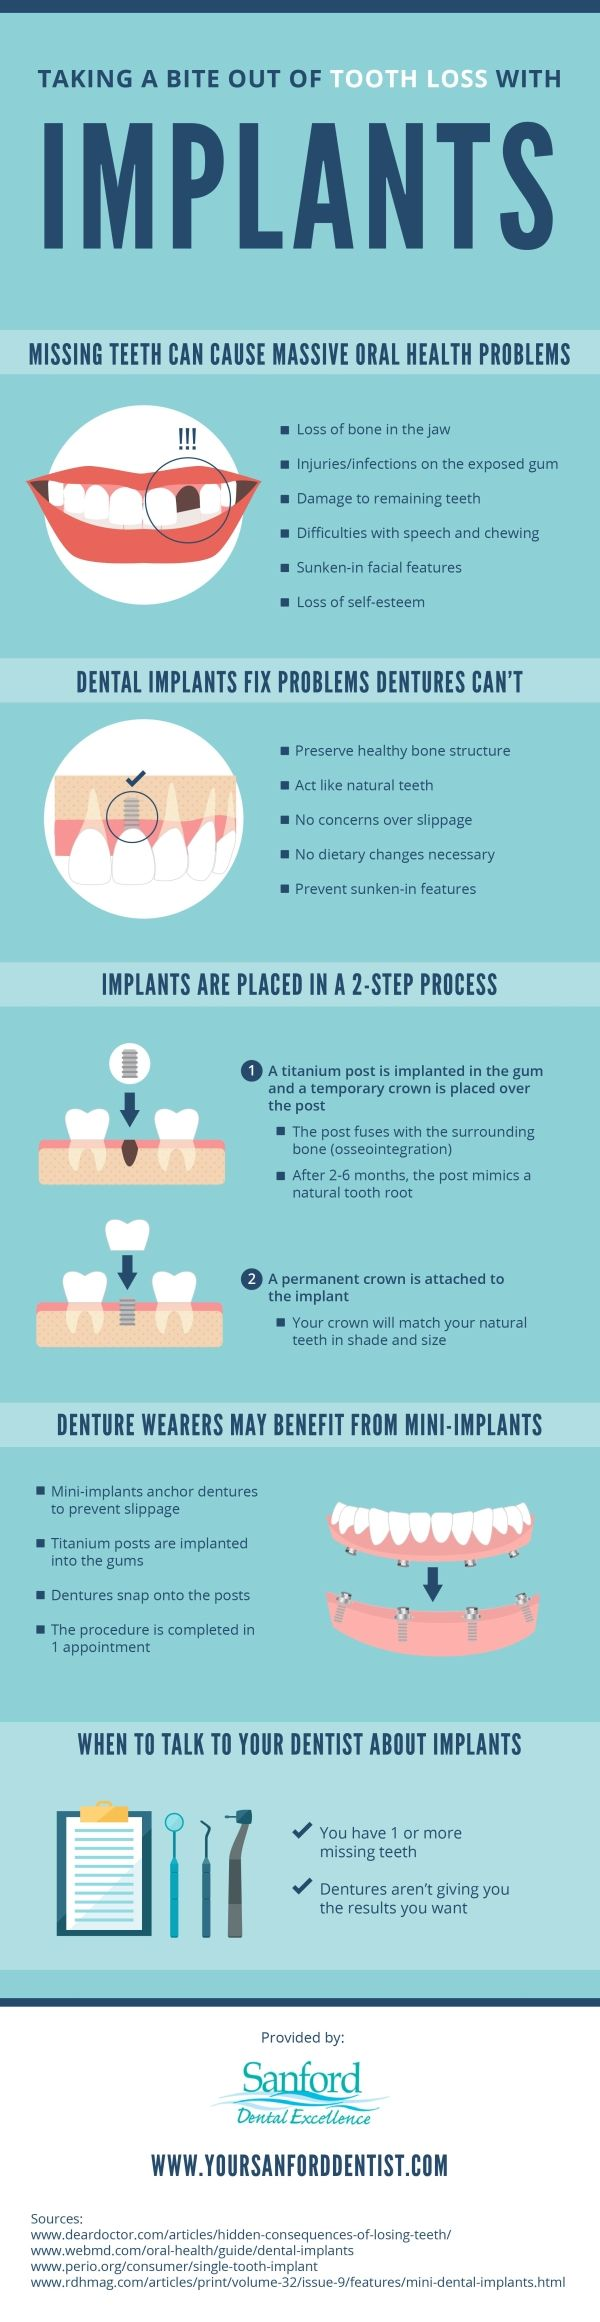 Dentures can be helpful, but they might not be exactly what you're looking for. Look through this infographic to find out if dental implants may be a better choice for your needs!